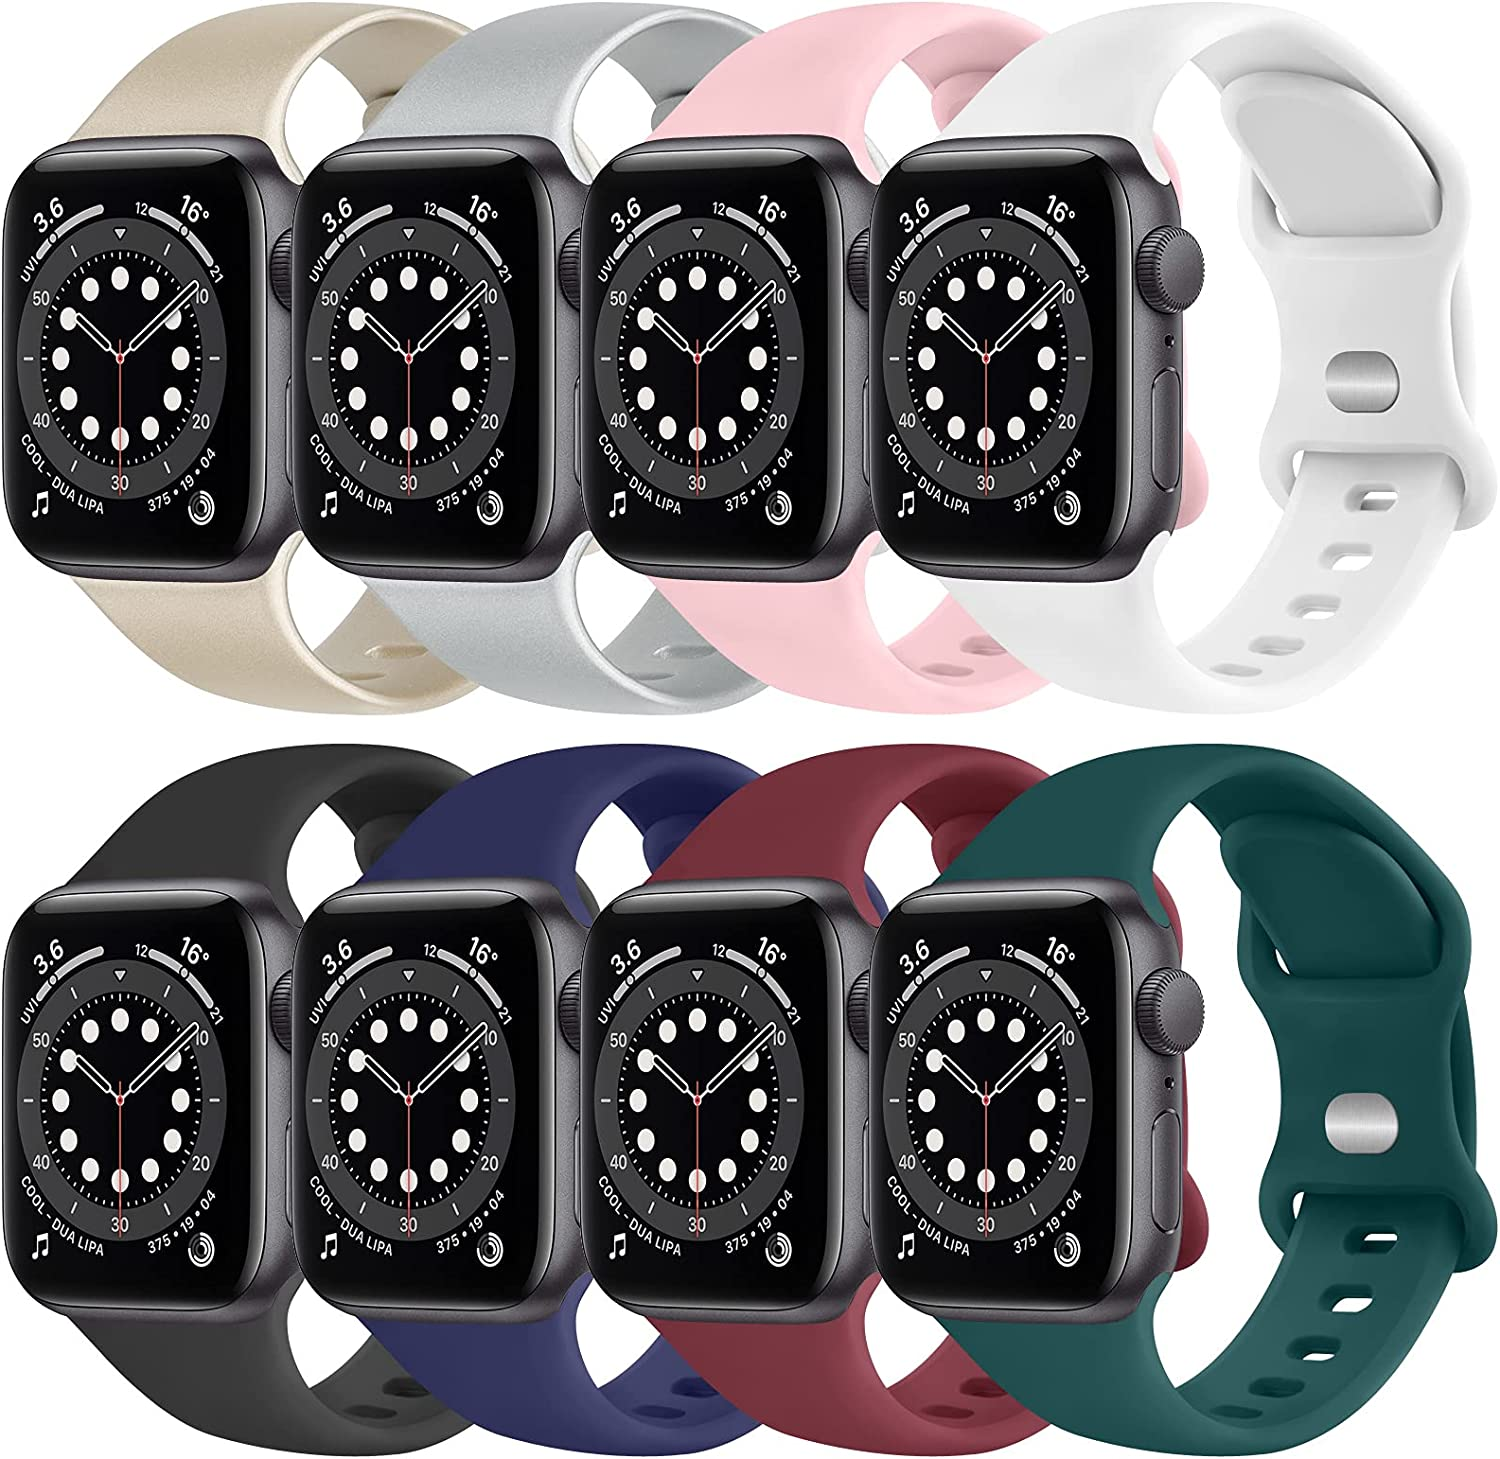 [8 PACK] Silicone Bands Compatible with Apple Watch Series 6 5 4 3 2 1 & iWatch SE for Women Men, Soft Strap Replacement for Apple Watch Bands 44mm 42mm